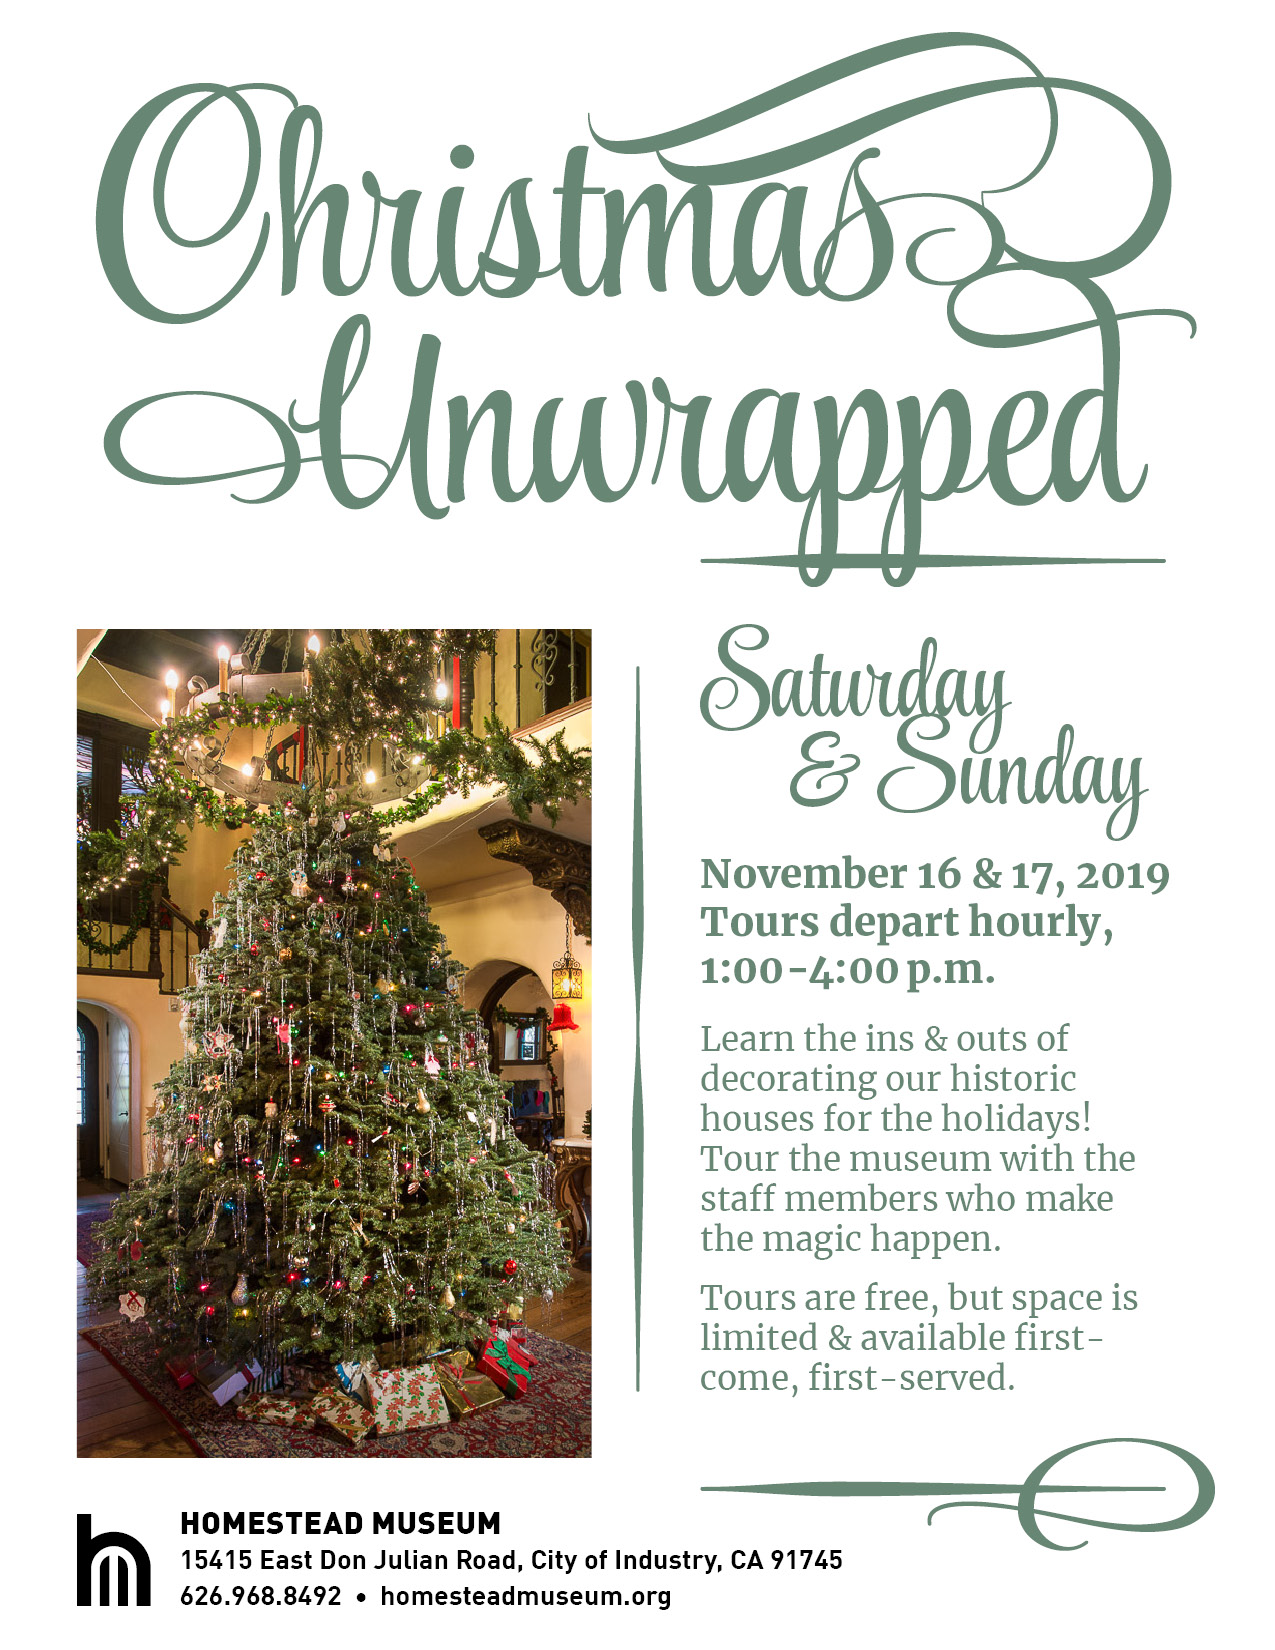 2019 Christmas Unwrapped flyer